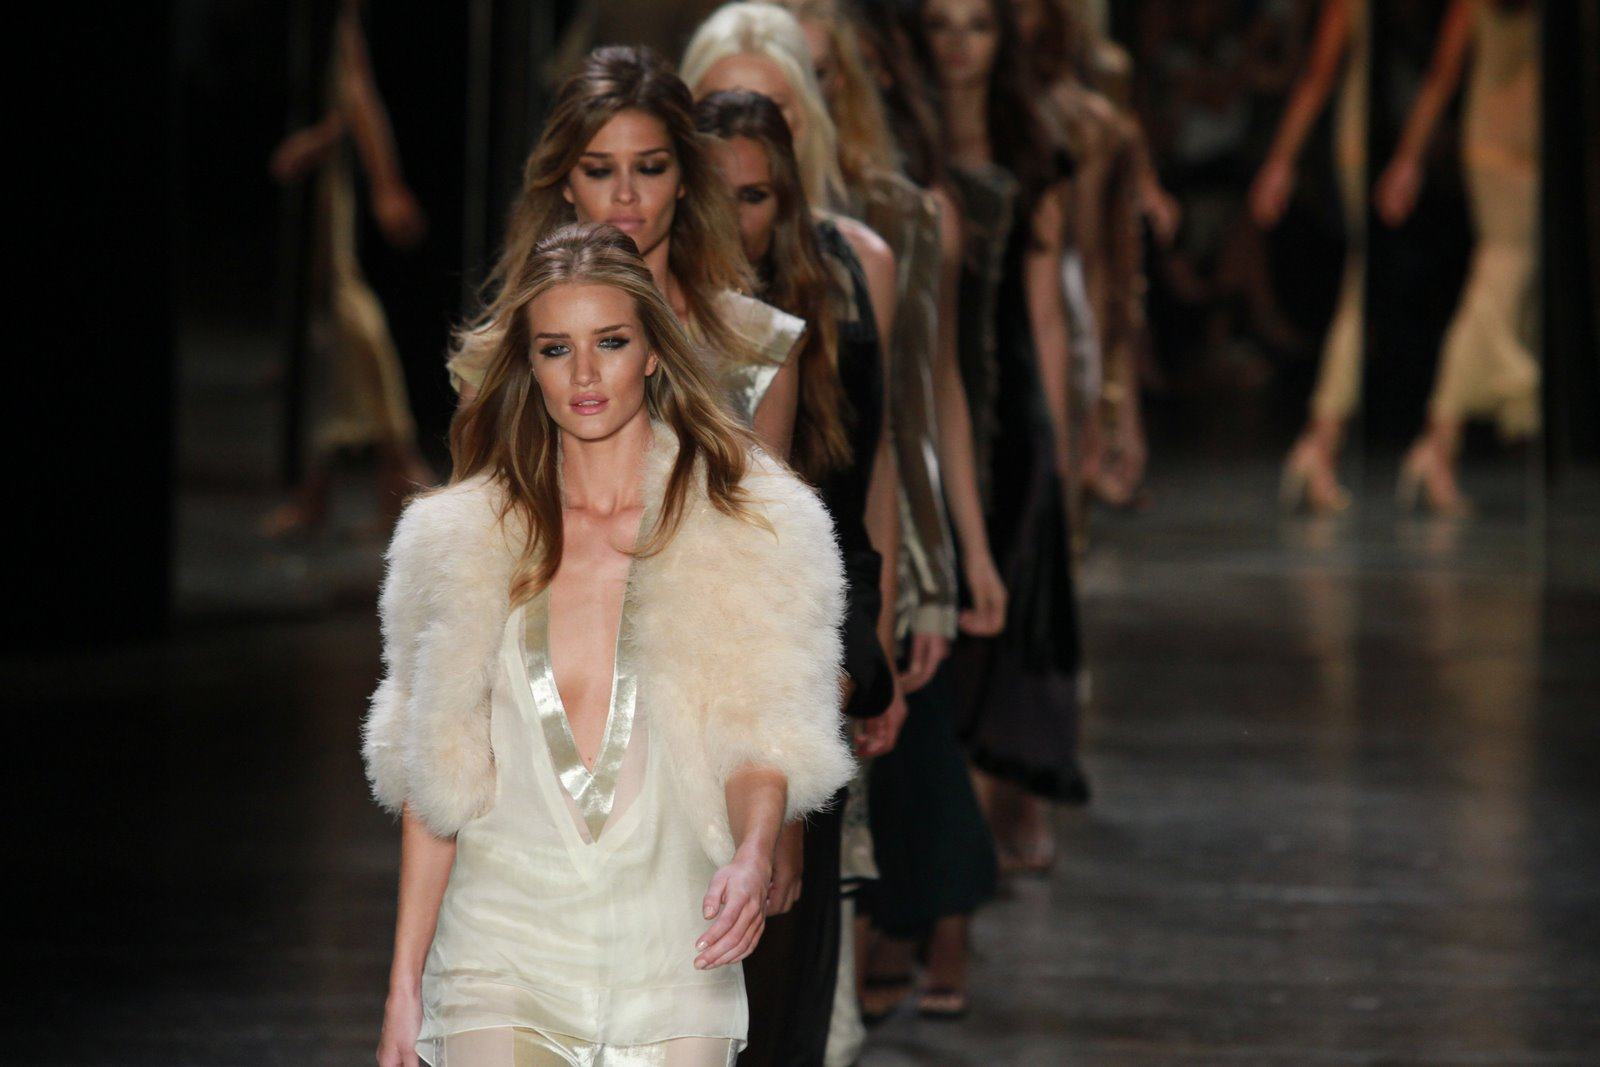 Rosie Huntington liderou a fila das modelos ao final do desfile da Animale no SPFW